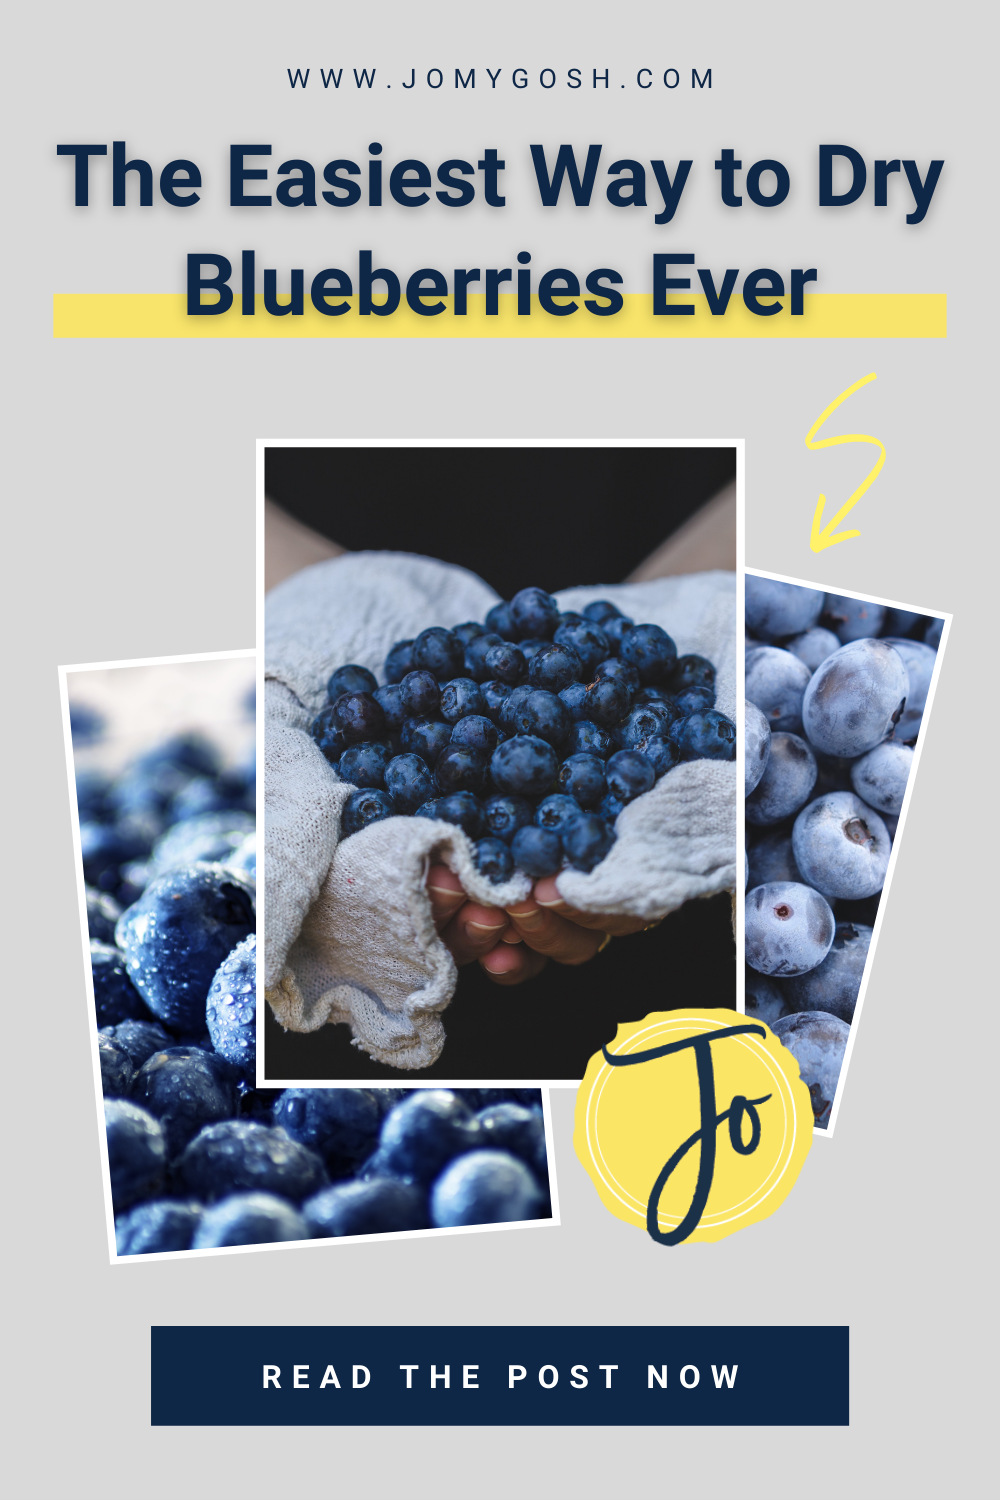 Save money and time by using this fool-proof, healthy way to dry blueberries... no extra equipment needed. #cooking #diy #blueberries #driedfruit #eathealthy #healthyeating #dryingfruit #homesteading